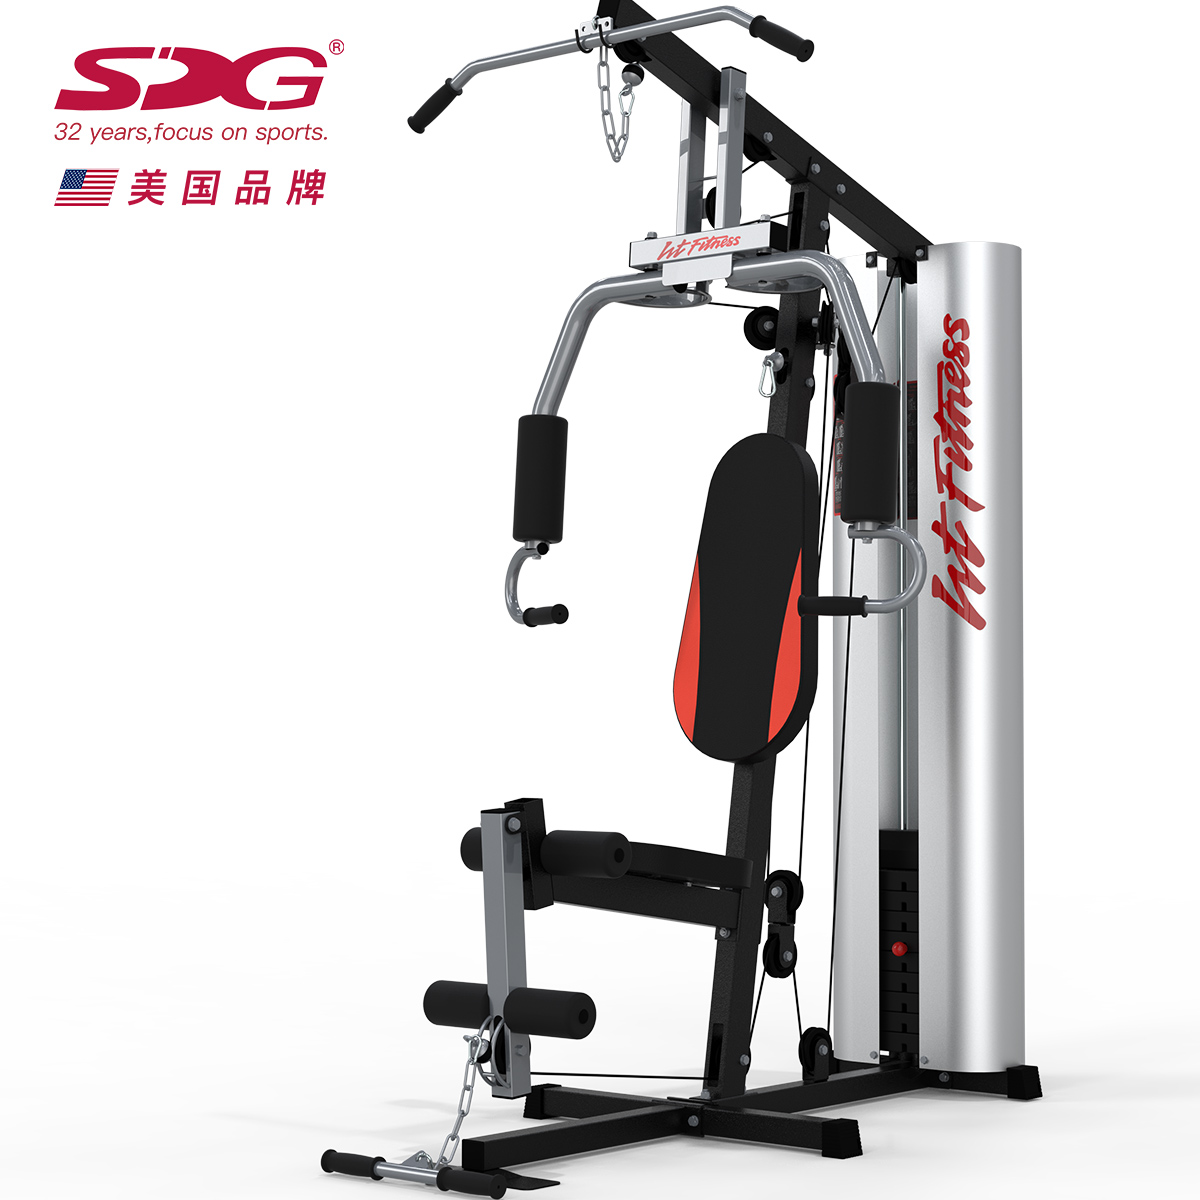 SDG single person comprehensive trainer fitness home combination multi-functional strength training equipment fitness